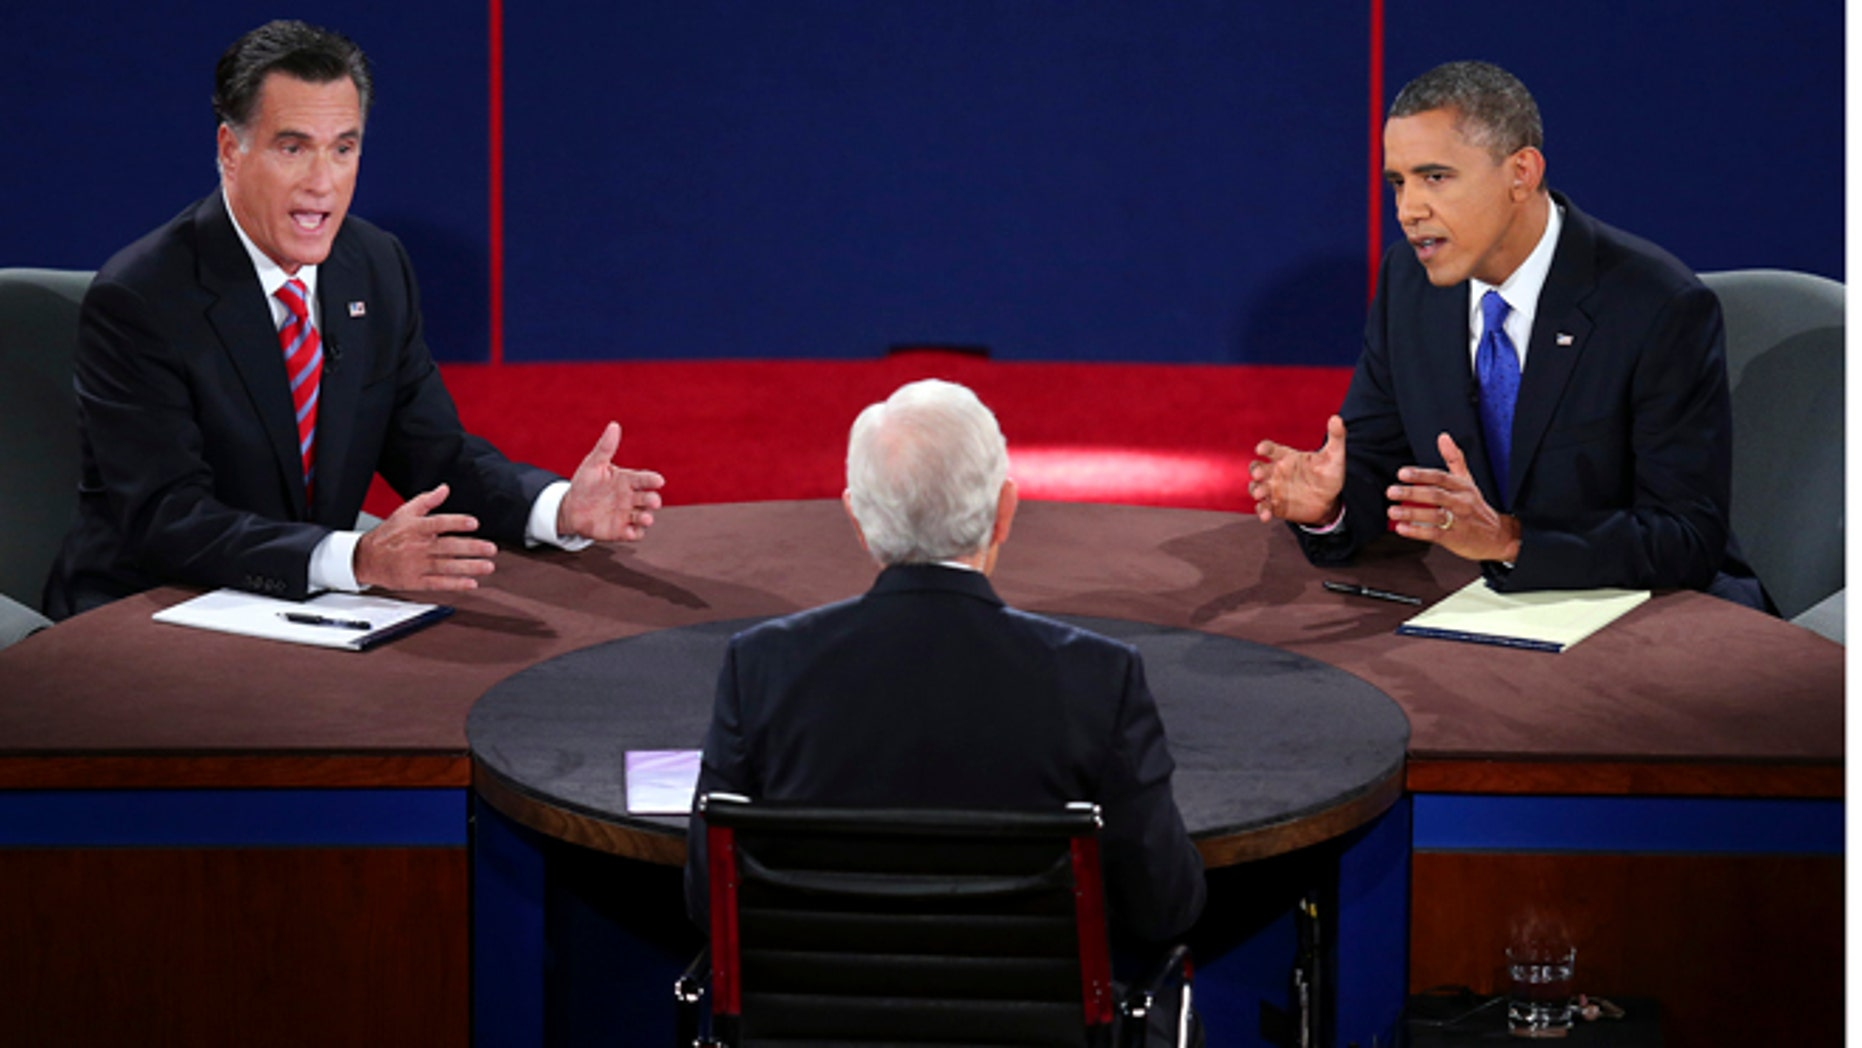 Oct. 22, 2012: Republican presidential nominee Mitt Romney and President Barack Obama answer a question during the third presidential debate at Lynn University, in Boca Raton, Fla.